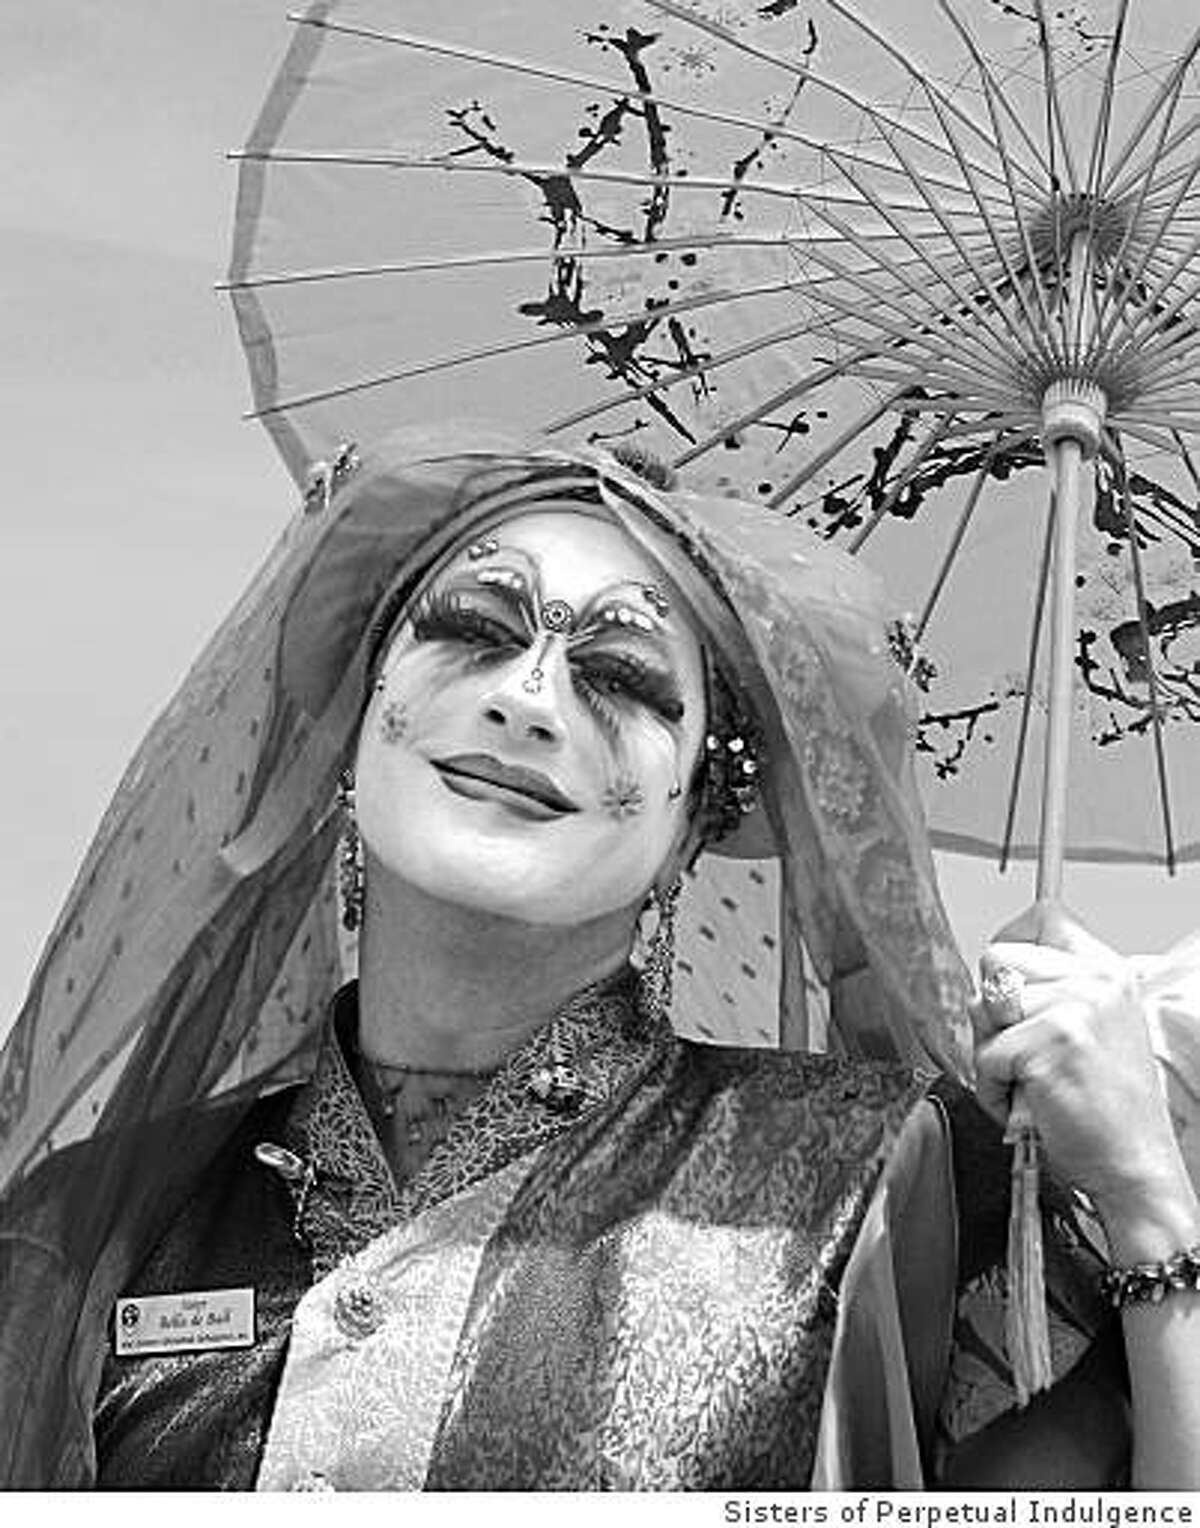 """Photo of Sister Bella de Ball appears in """"Under A Full Moon: 30 Years of Perpetual Indulgence"""" (April 10 - June 28) at the Yerba Buena Center for the Arts.Credit: Sisters of Perpetual Indulgence Archive"""